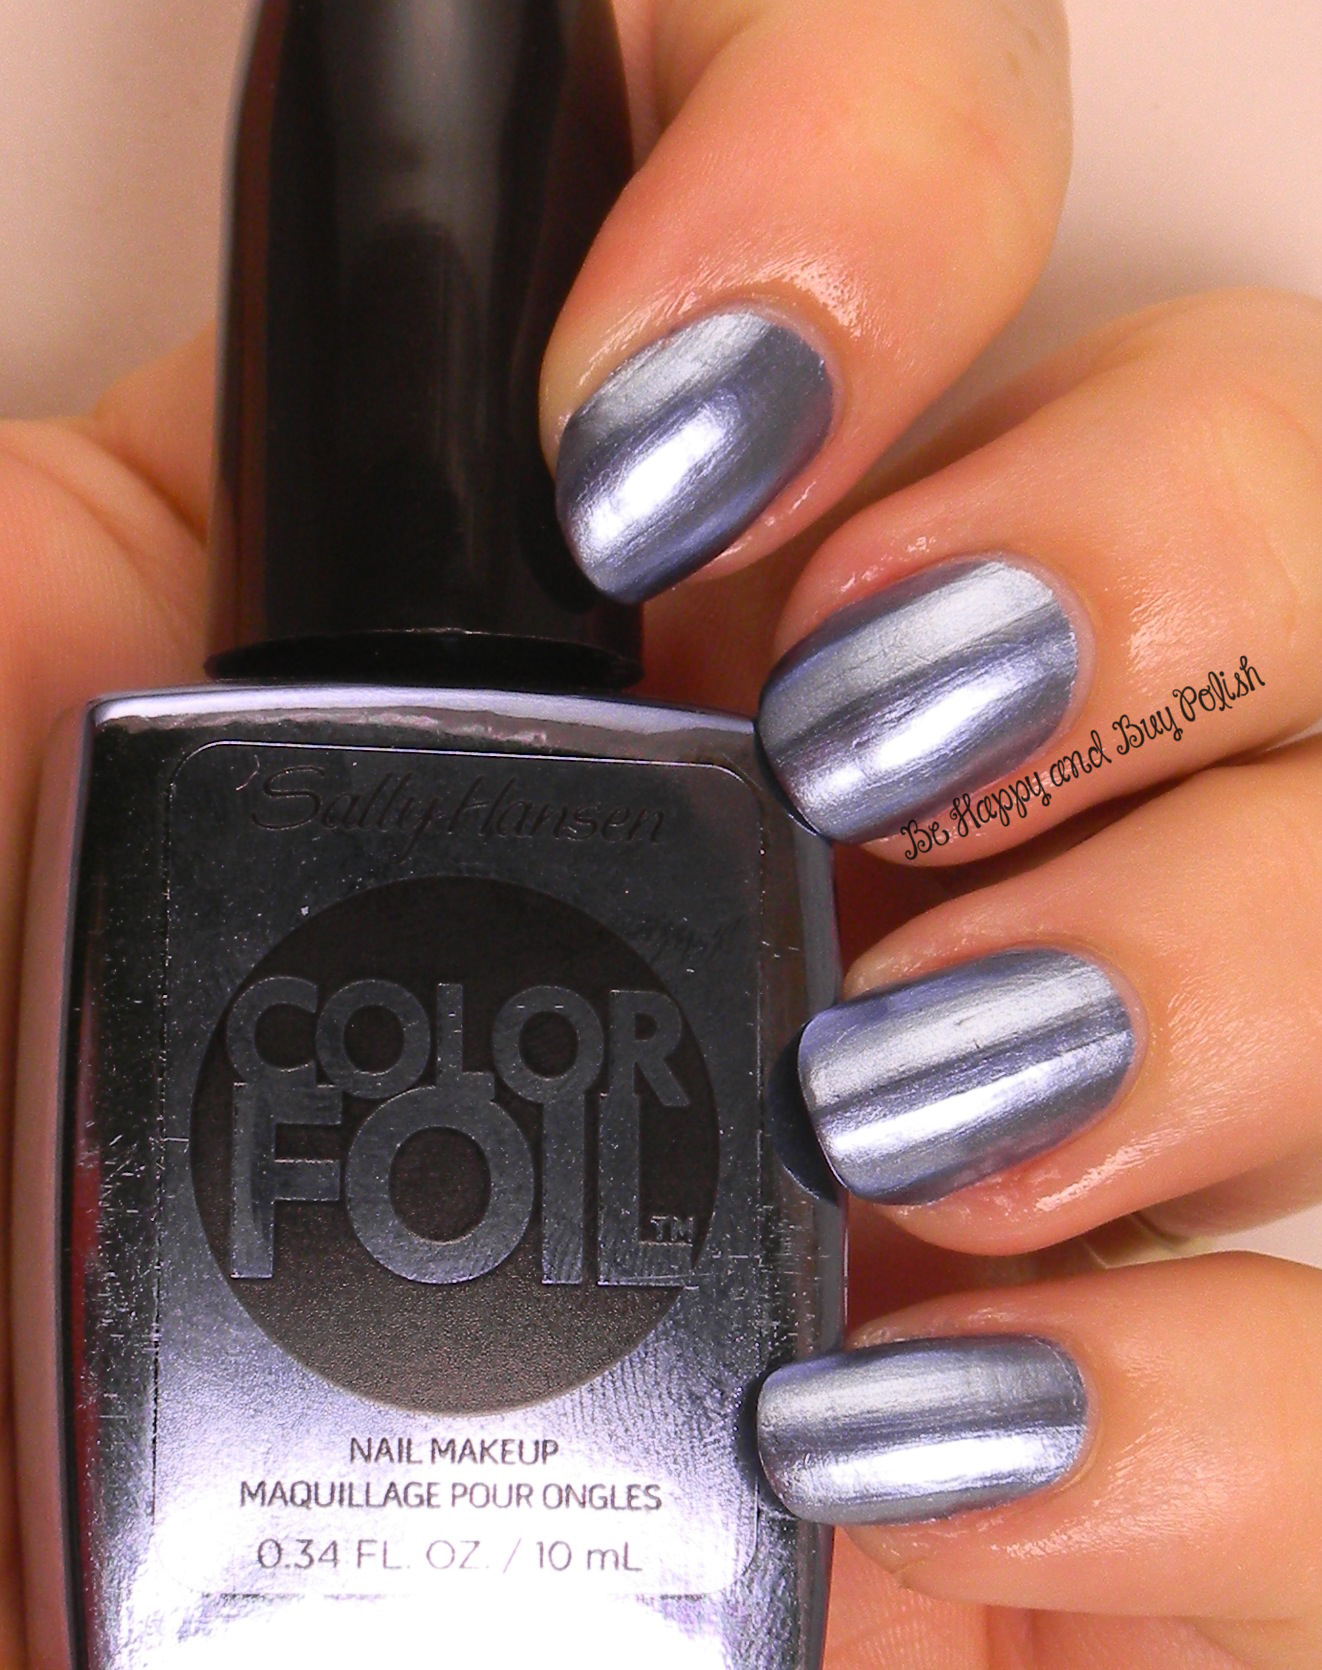 Sally Hansen Color Foils (partial collection) | Be Happy and Buy Polish